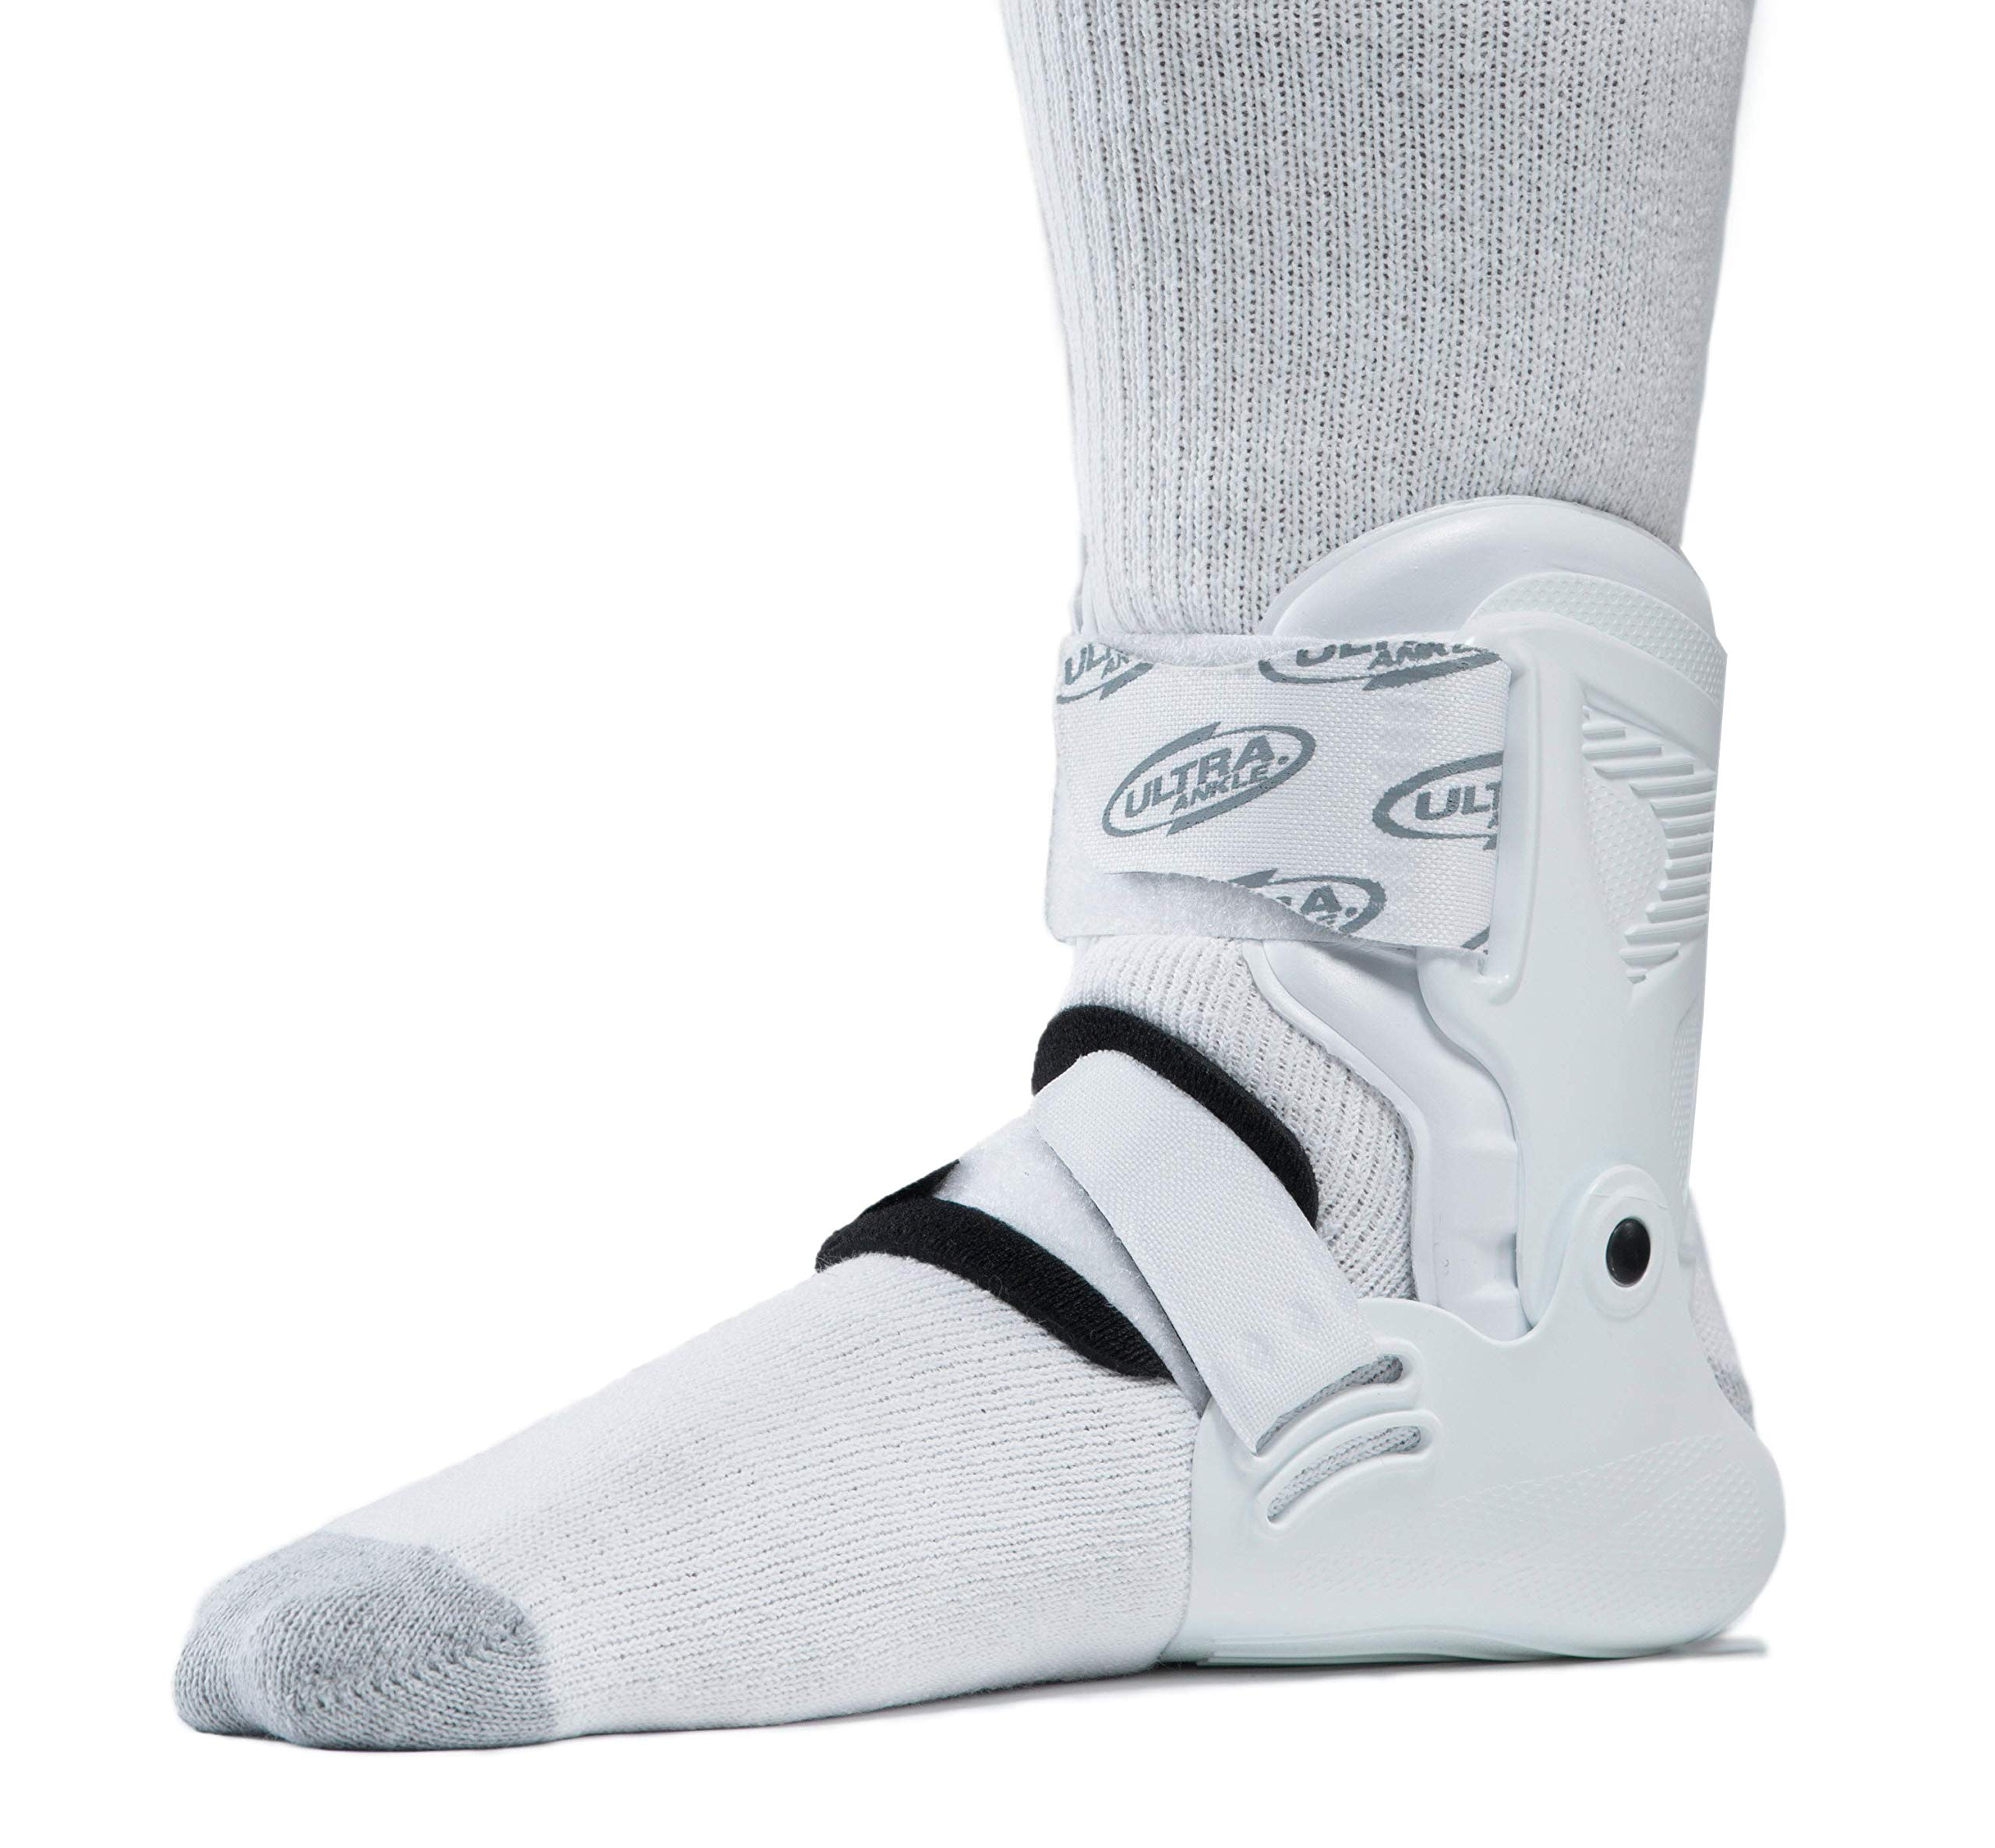 Ultra Zoom Ankle Brace for Injury Prevention, Provides Support and Helps Prevent Sprained Ankles in Volleyball, Basketball, Football - Supportive, Secure Brace for Athletes- White, Large/X-Large